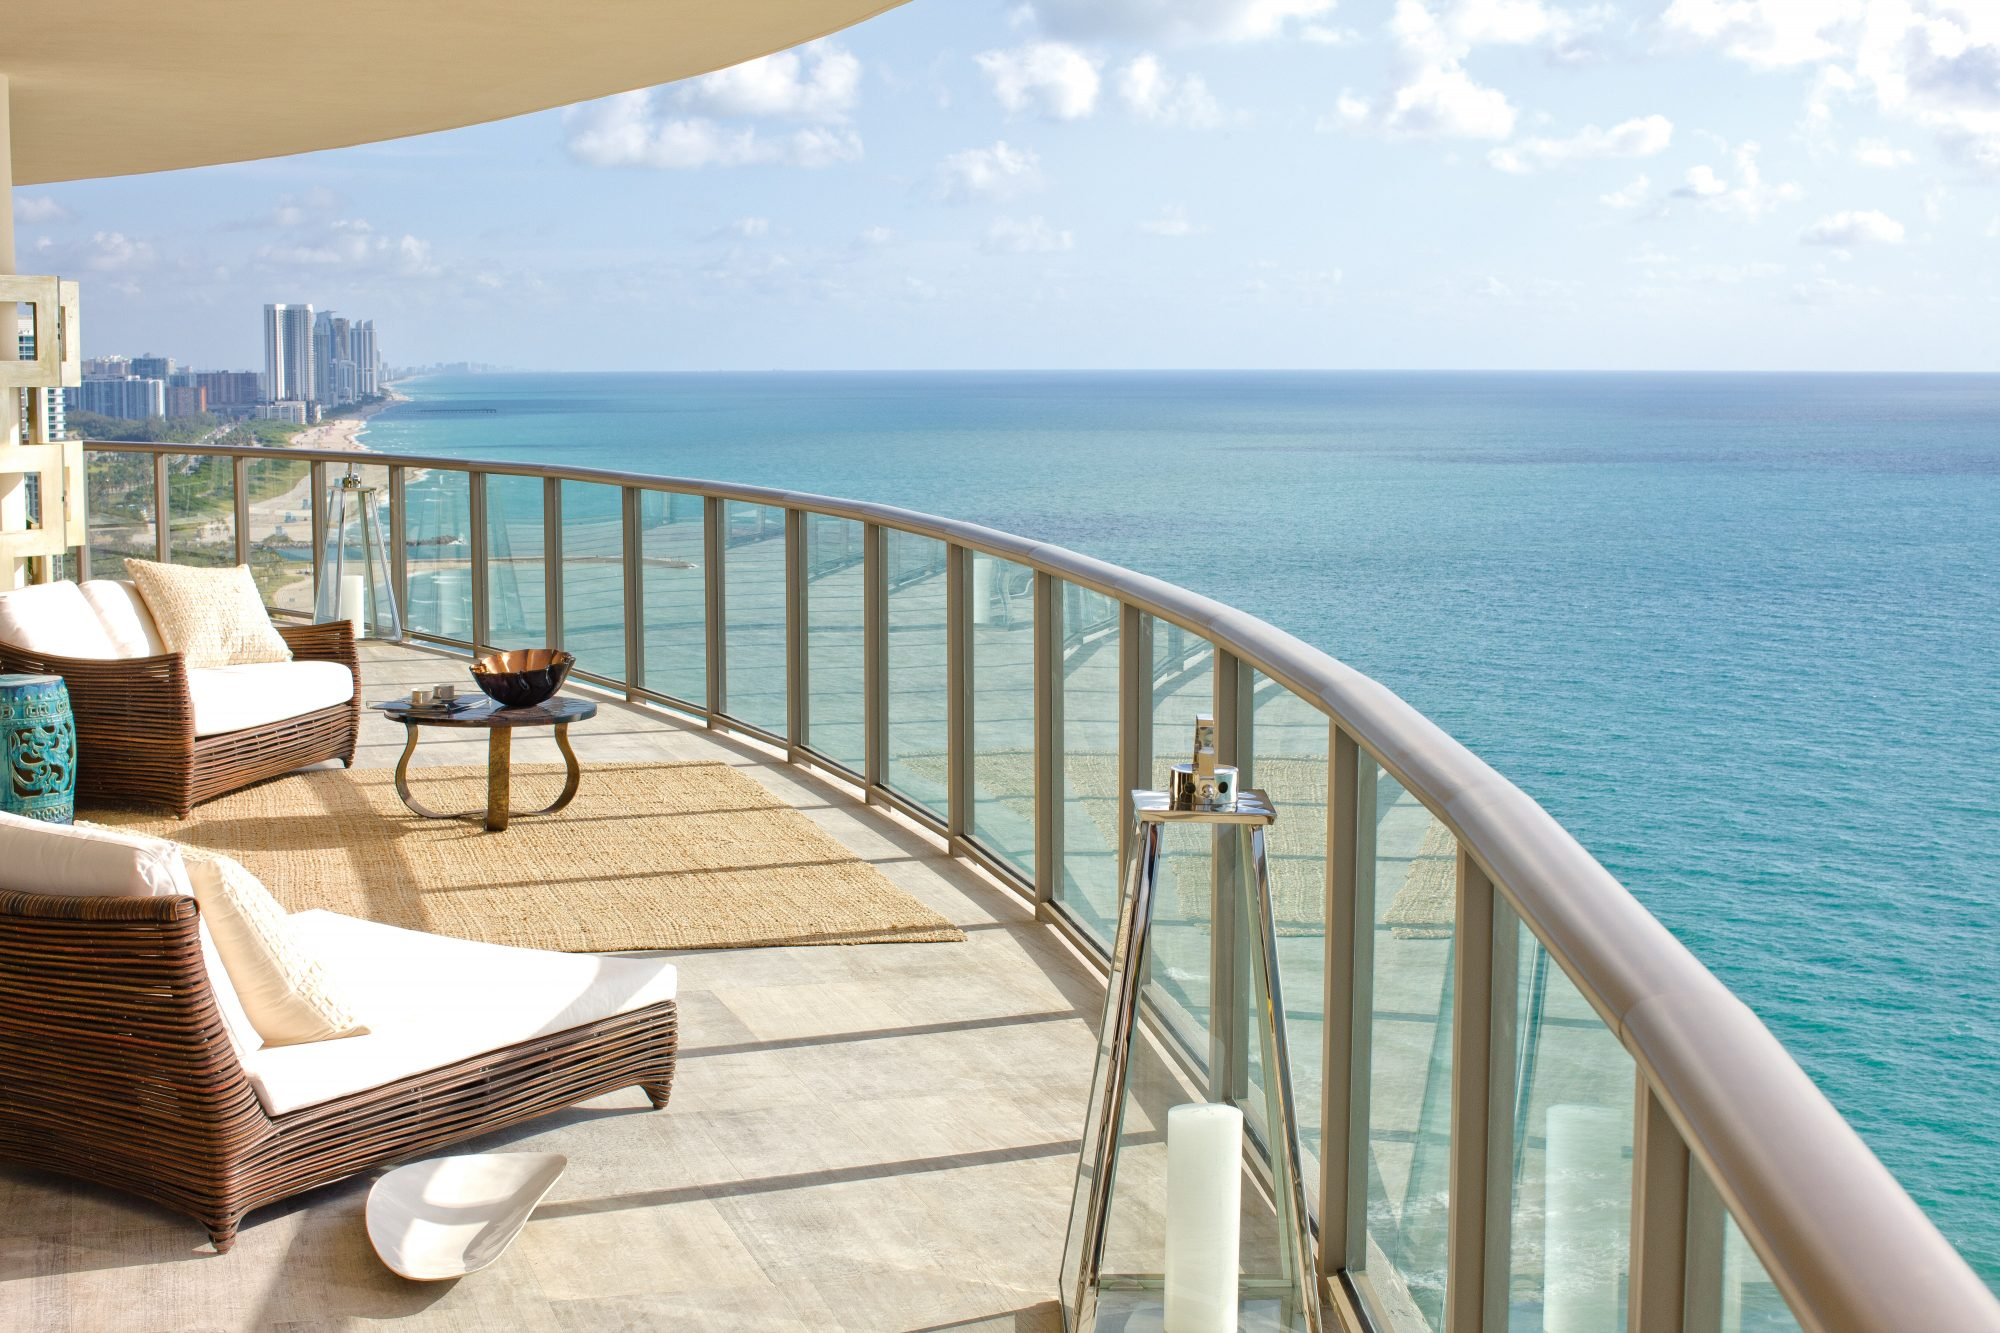 No. 24 St. Regis Bal Harbour Resort & Residences in Miami, Florida